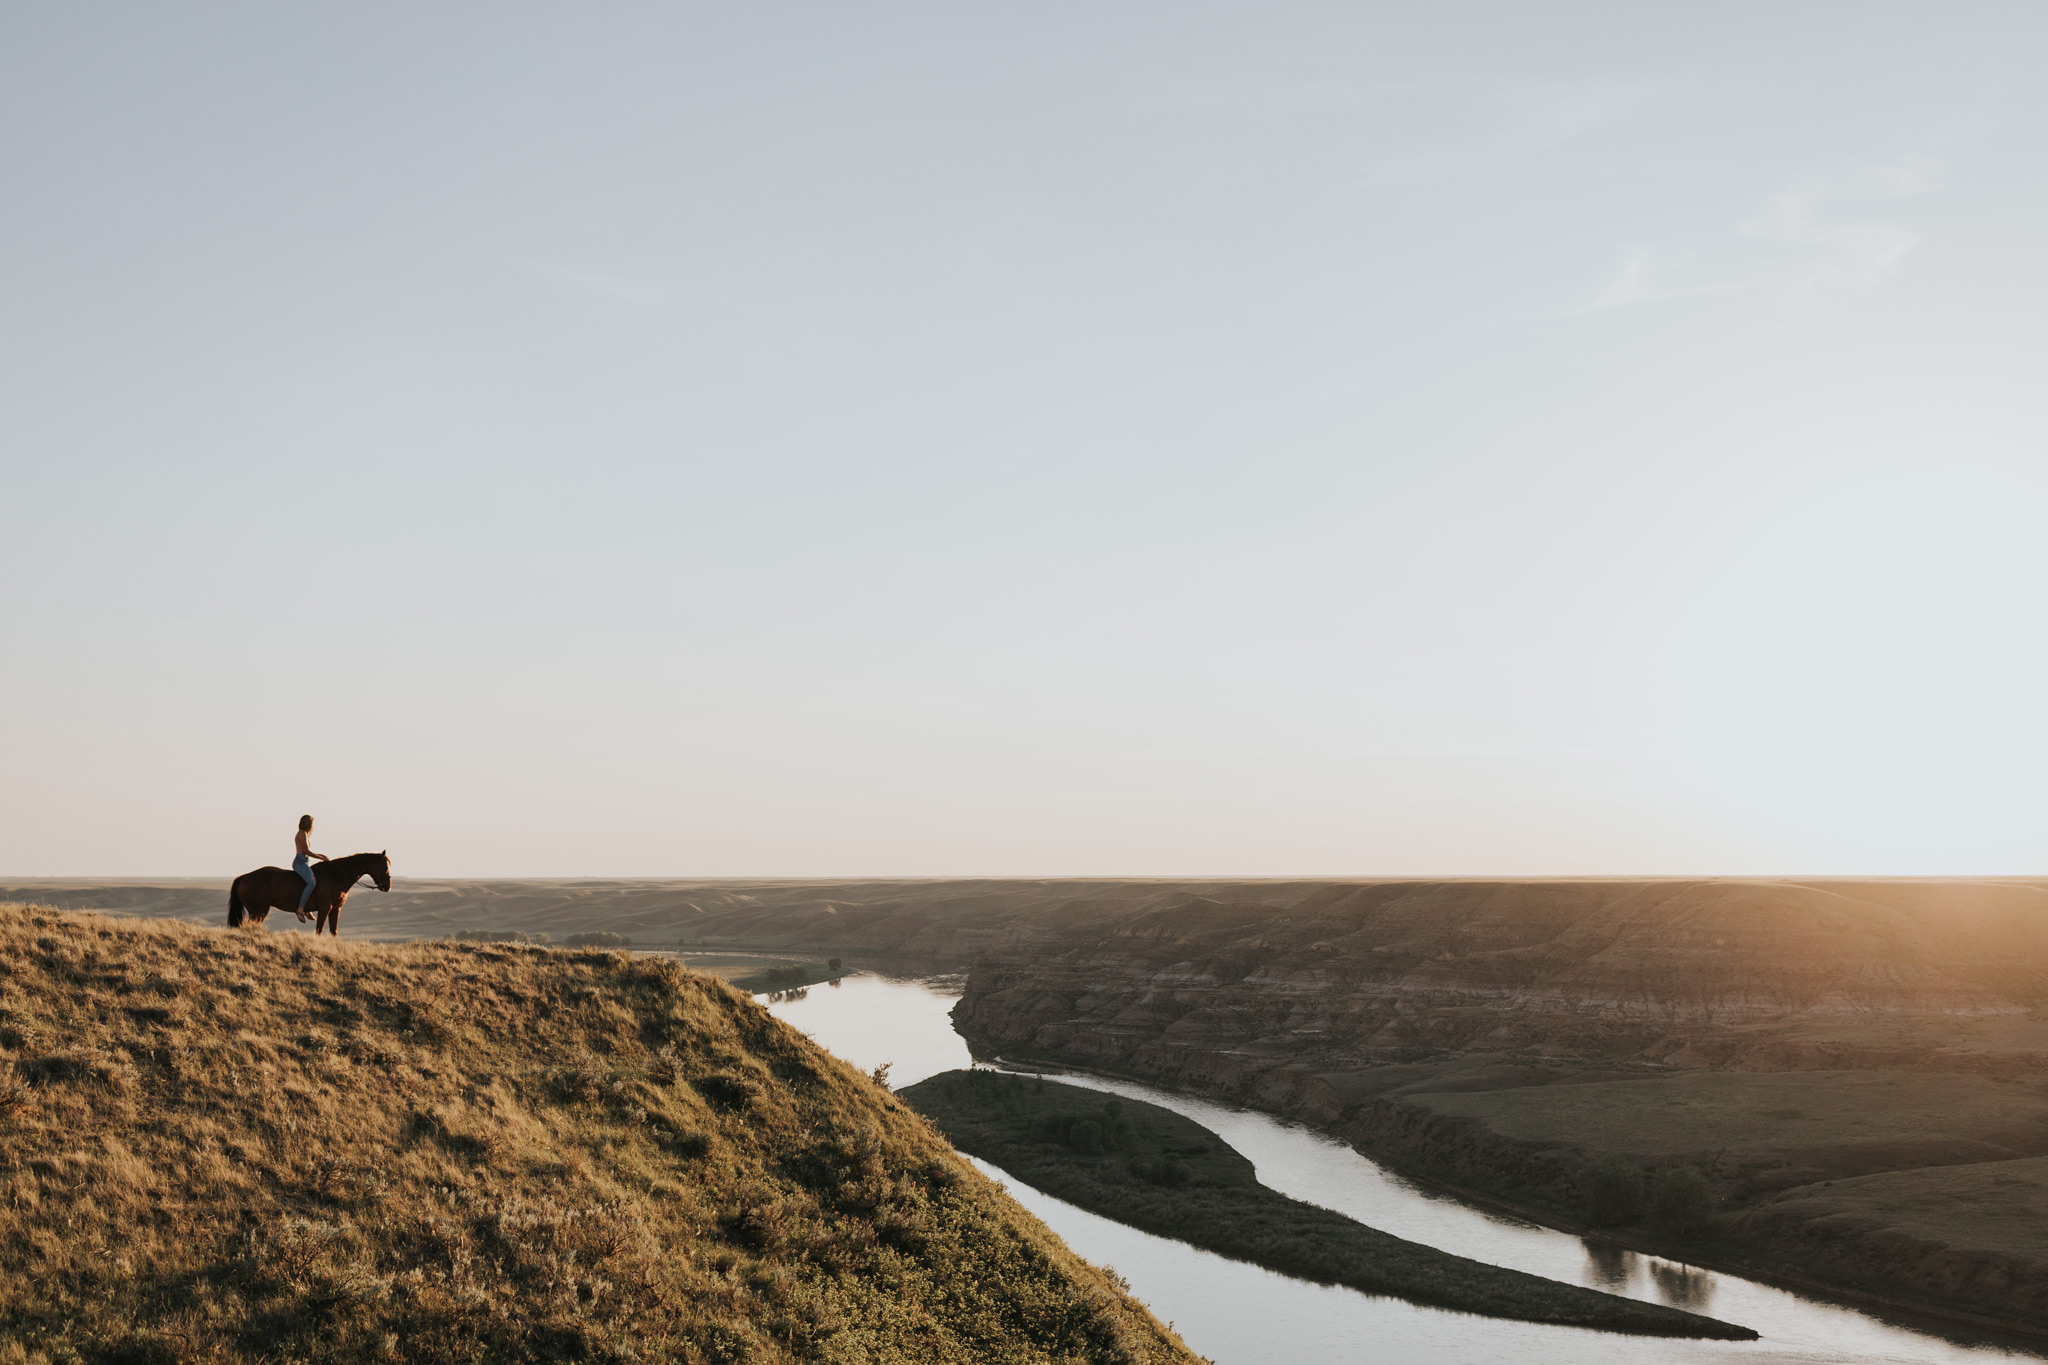 girl on horse overlooking river at sunset